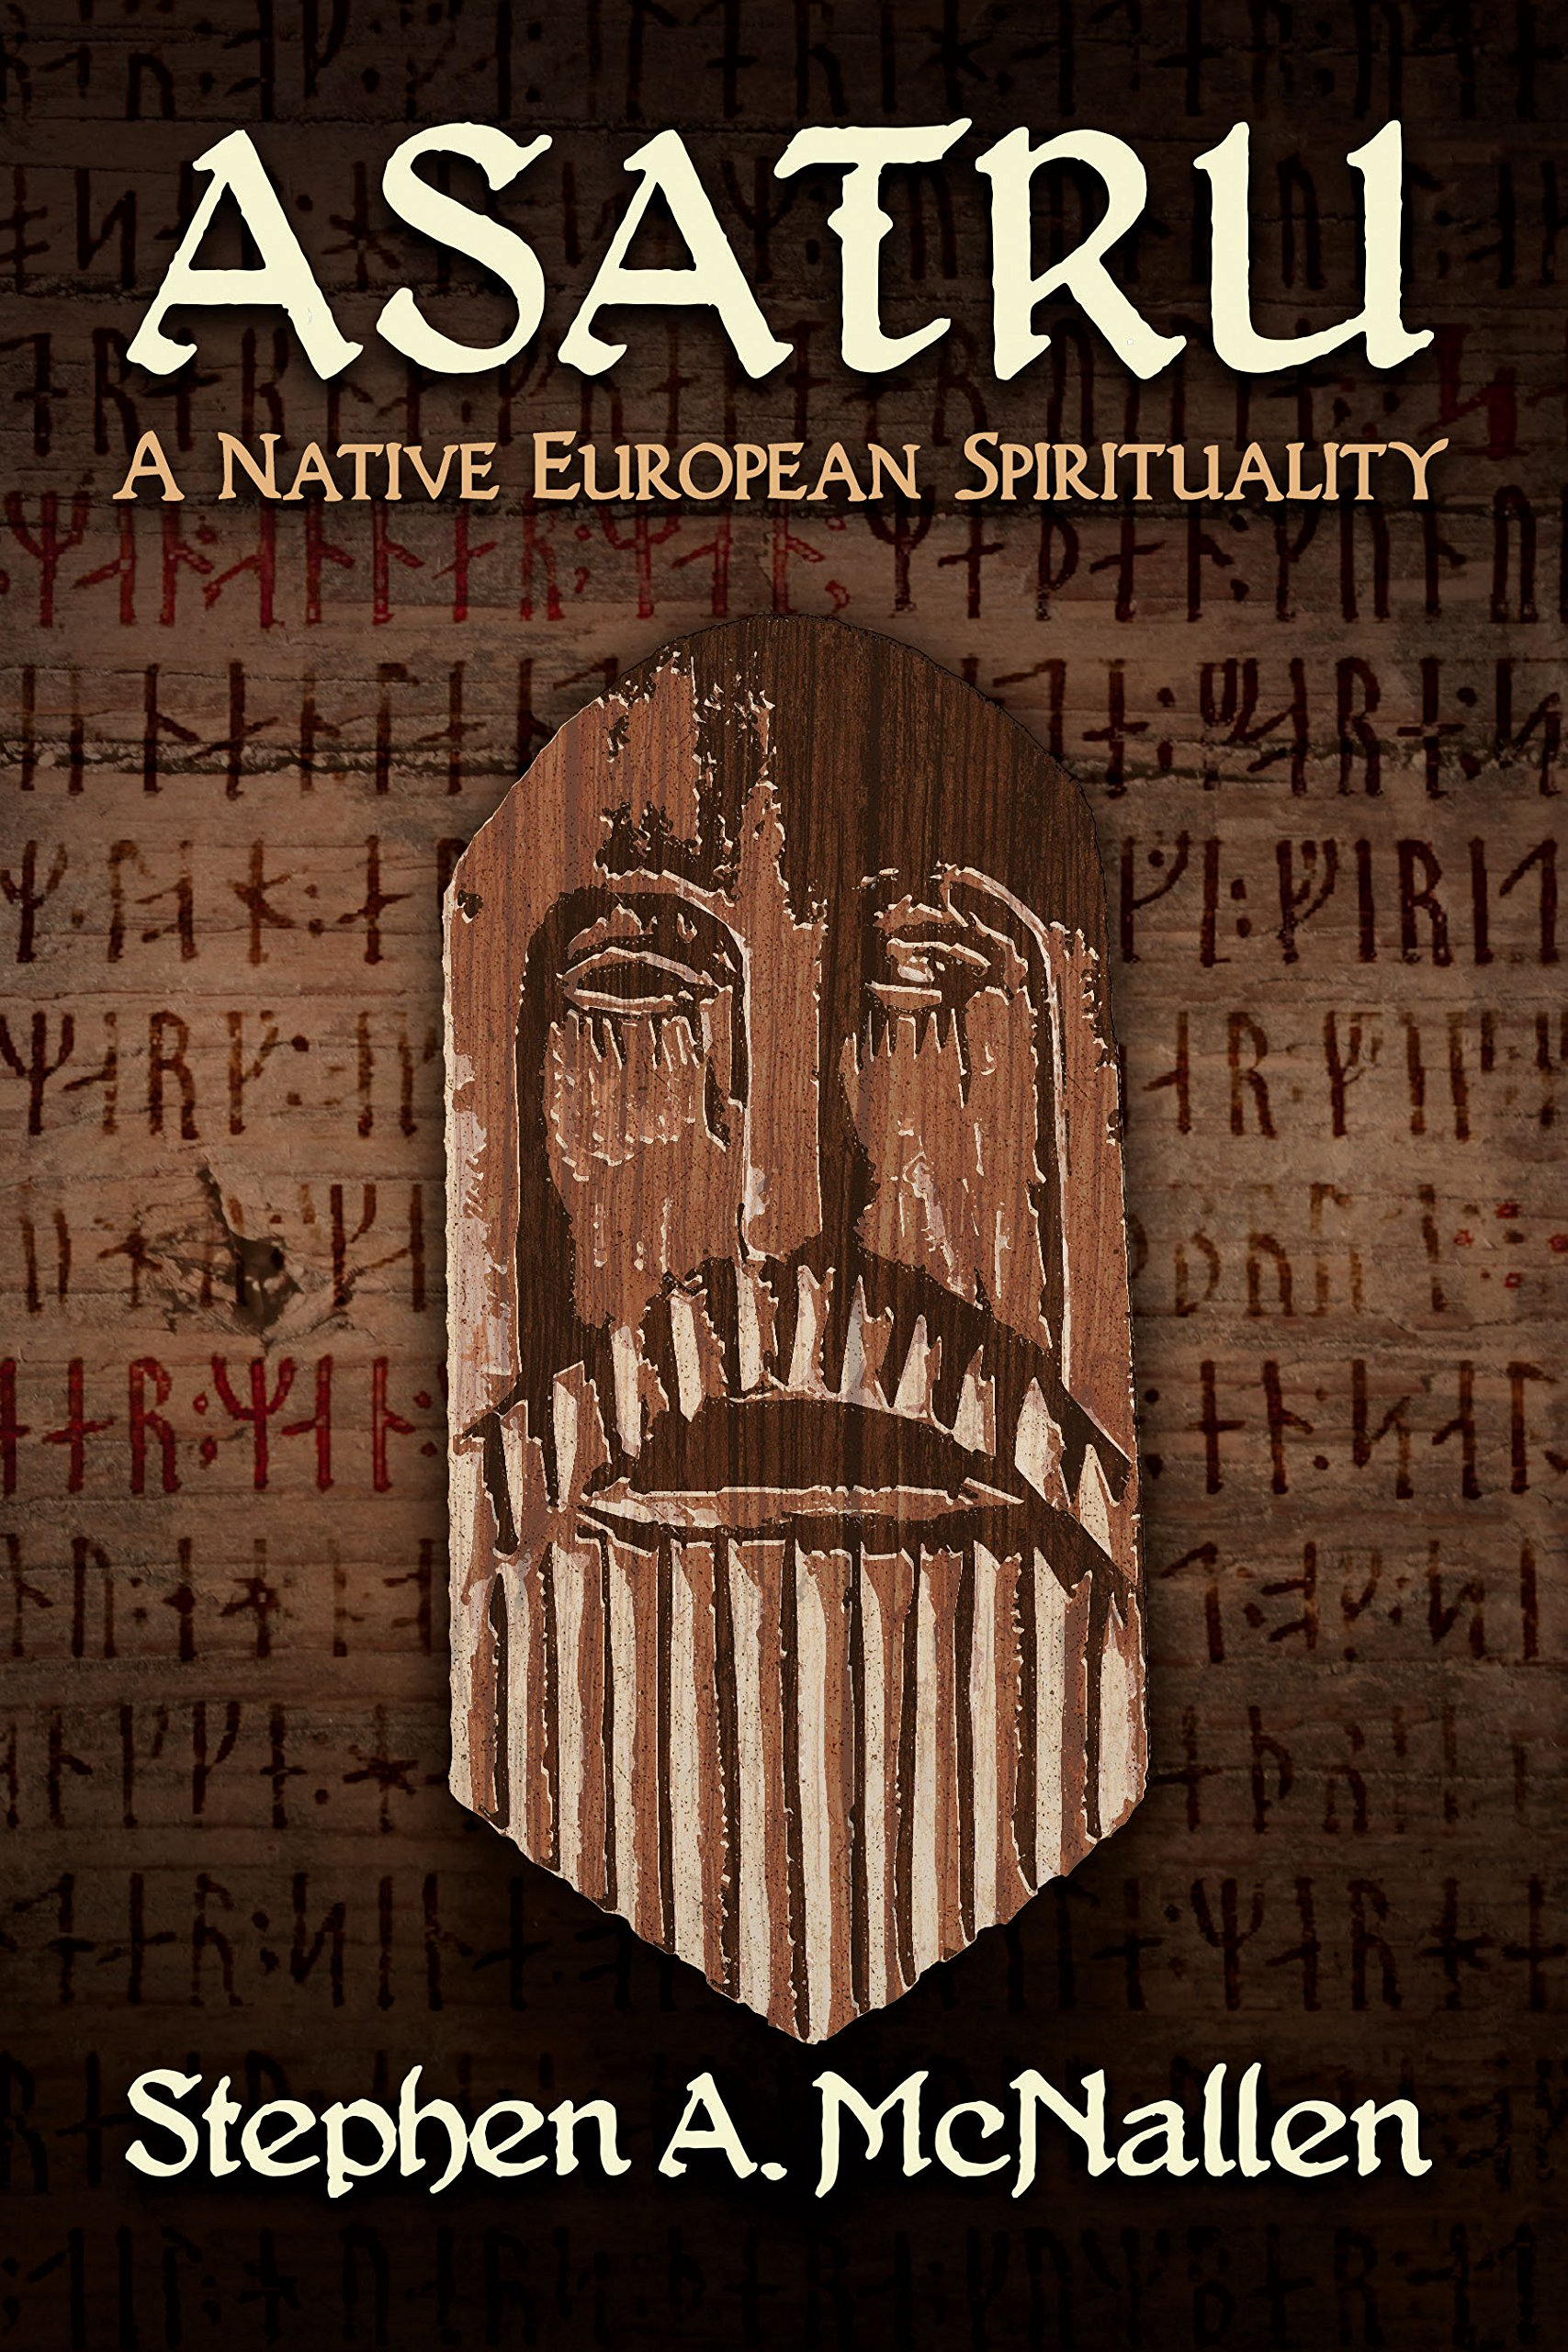 fastest drone with Asatru A Native European Spirituality By Stephen A Mcnallen Available For Pre Order on Asatru A Native European Spirituality By Stephen A Mcnallen Available For Pre Order in addition Rainbow Six Siege May Get A Hardcore Playlist In 2016 in addition Pokq8 in addition Coolest 3d Printed Things also Drone Racing Gets Espn Coverage.